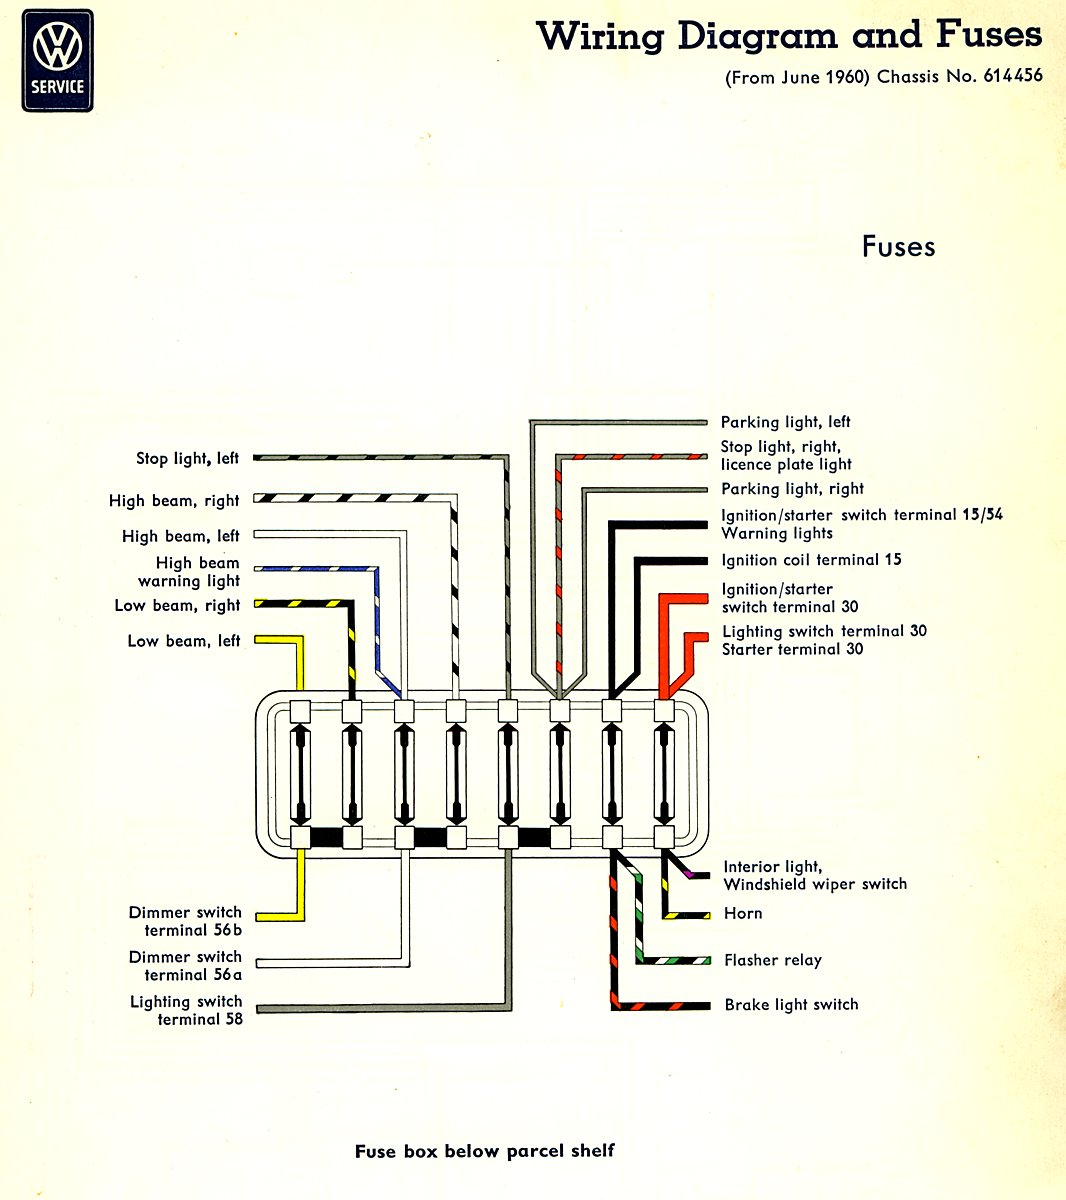 1964 vw wiper motor wiring diagram thesamba com type 2    wiring    diagrams  thesamba com type 2    wiring    diagrams